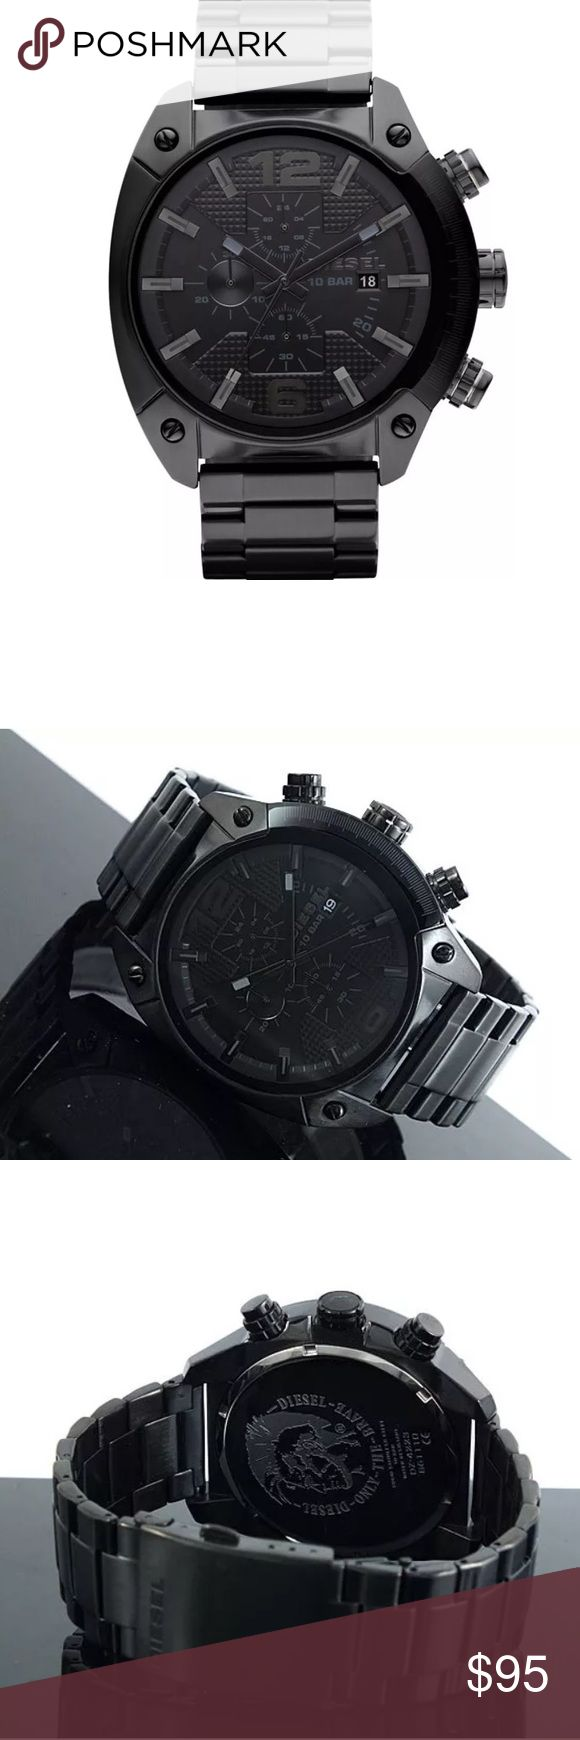 ‼️ SALE DIESEL Men's chronograph watch Brand new and authentic DIESEL overflow large watch  Model # DZ4223 Dial window -  Mineral Case material  -  Black Stainless steel  Case diameter - Approximately 49 mm.(not including Crown) Band material -  Stainless Steel Band width - Approximately 24 mm. Dial color - Black Crown - Stainless steel  Movement - Quartz Water resistant 10 Bar  Great gift for anyone. Diesel engraved. Comes with box Diesel Accessories Watches